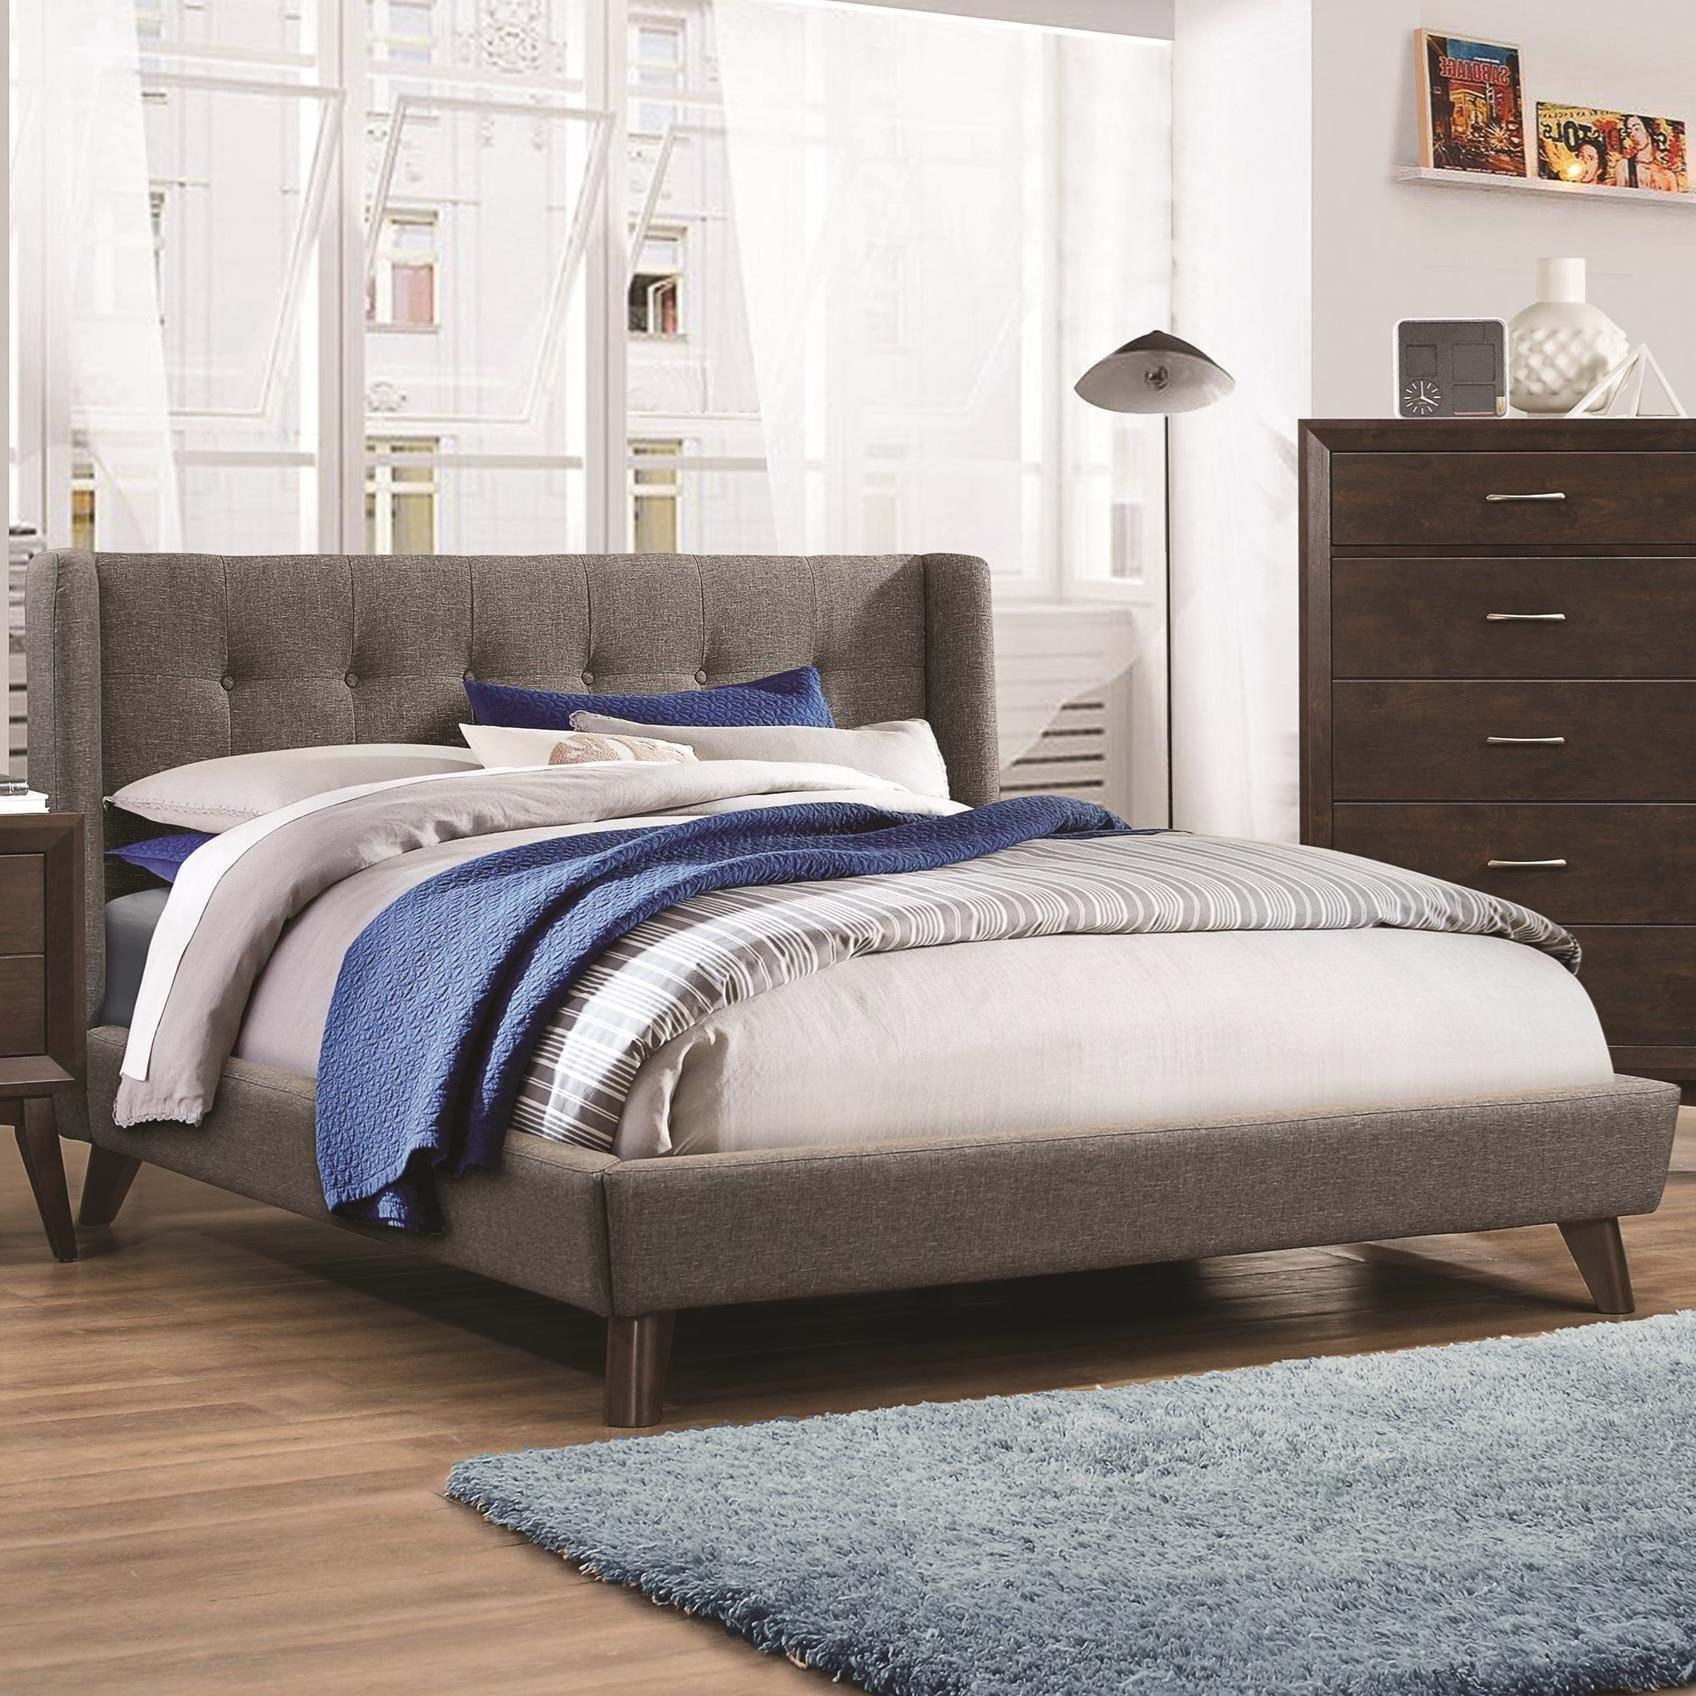 Carrington California King Bed by Coaster at Northeast Factory Direct